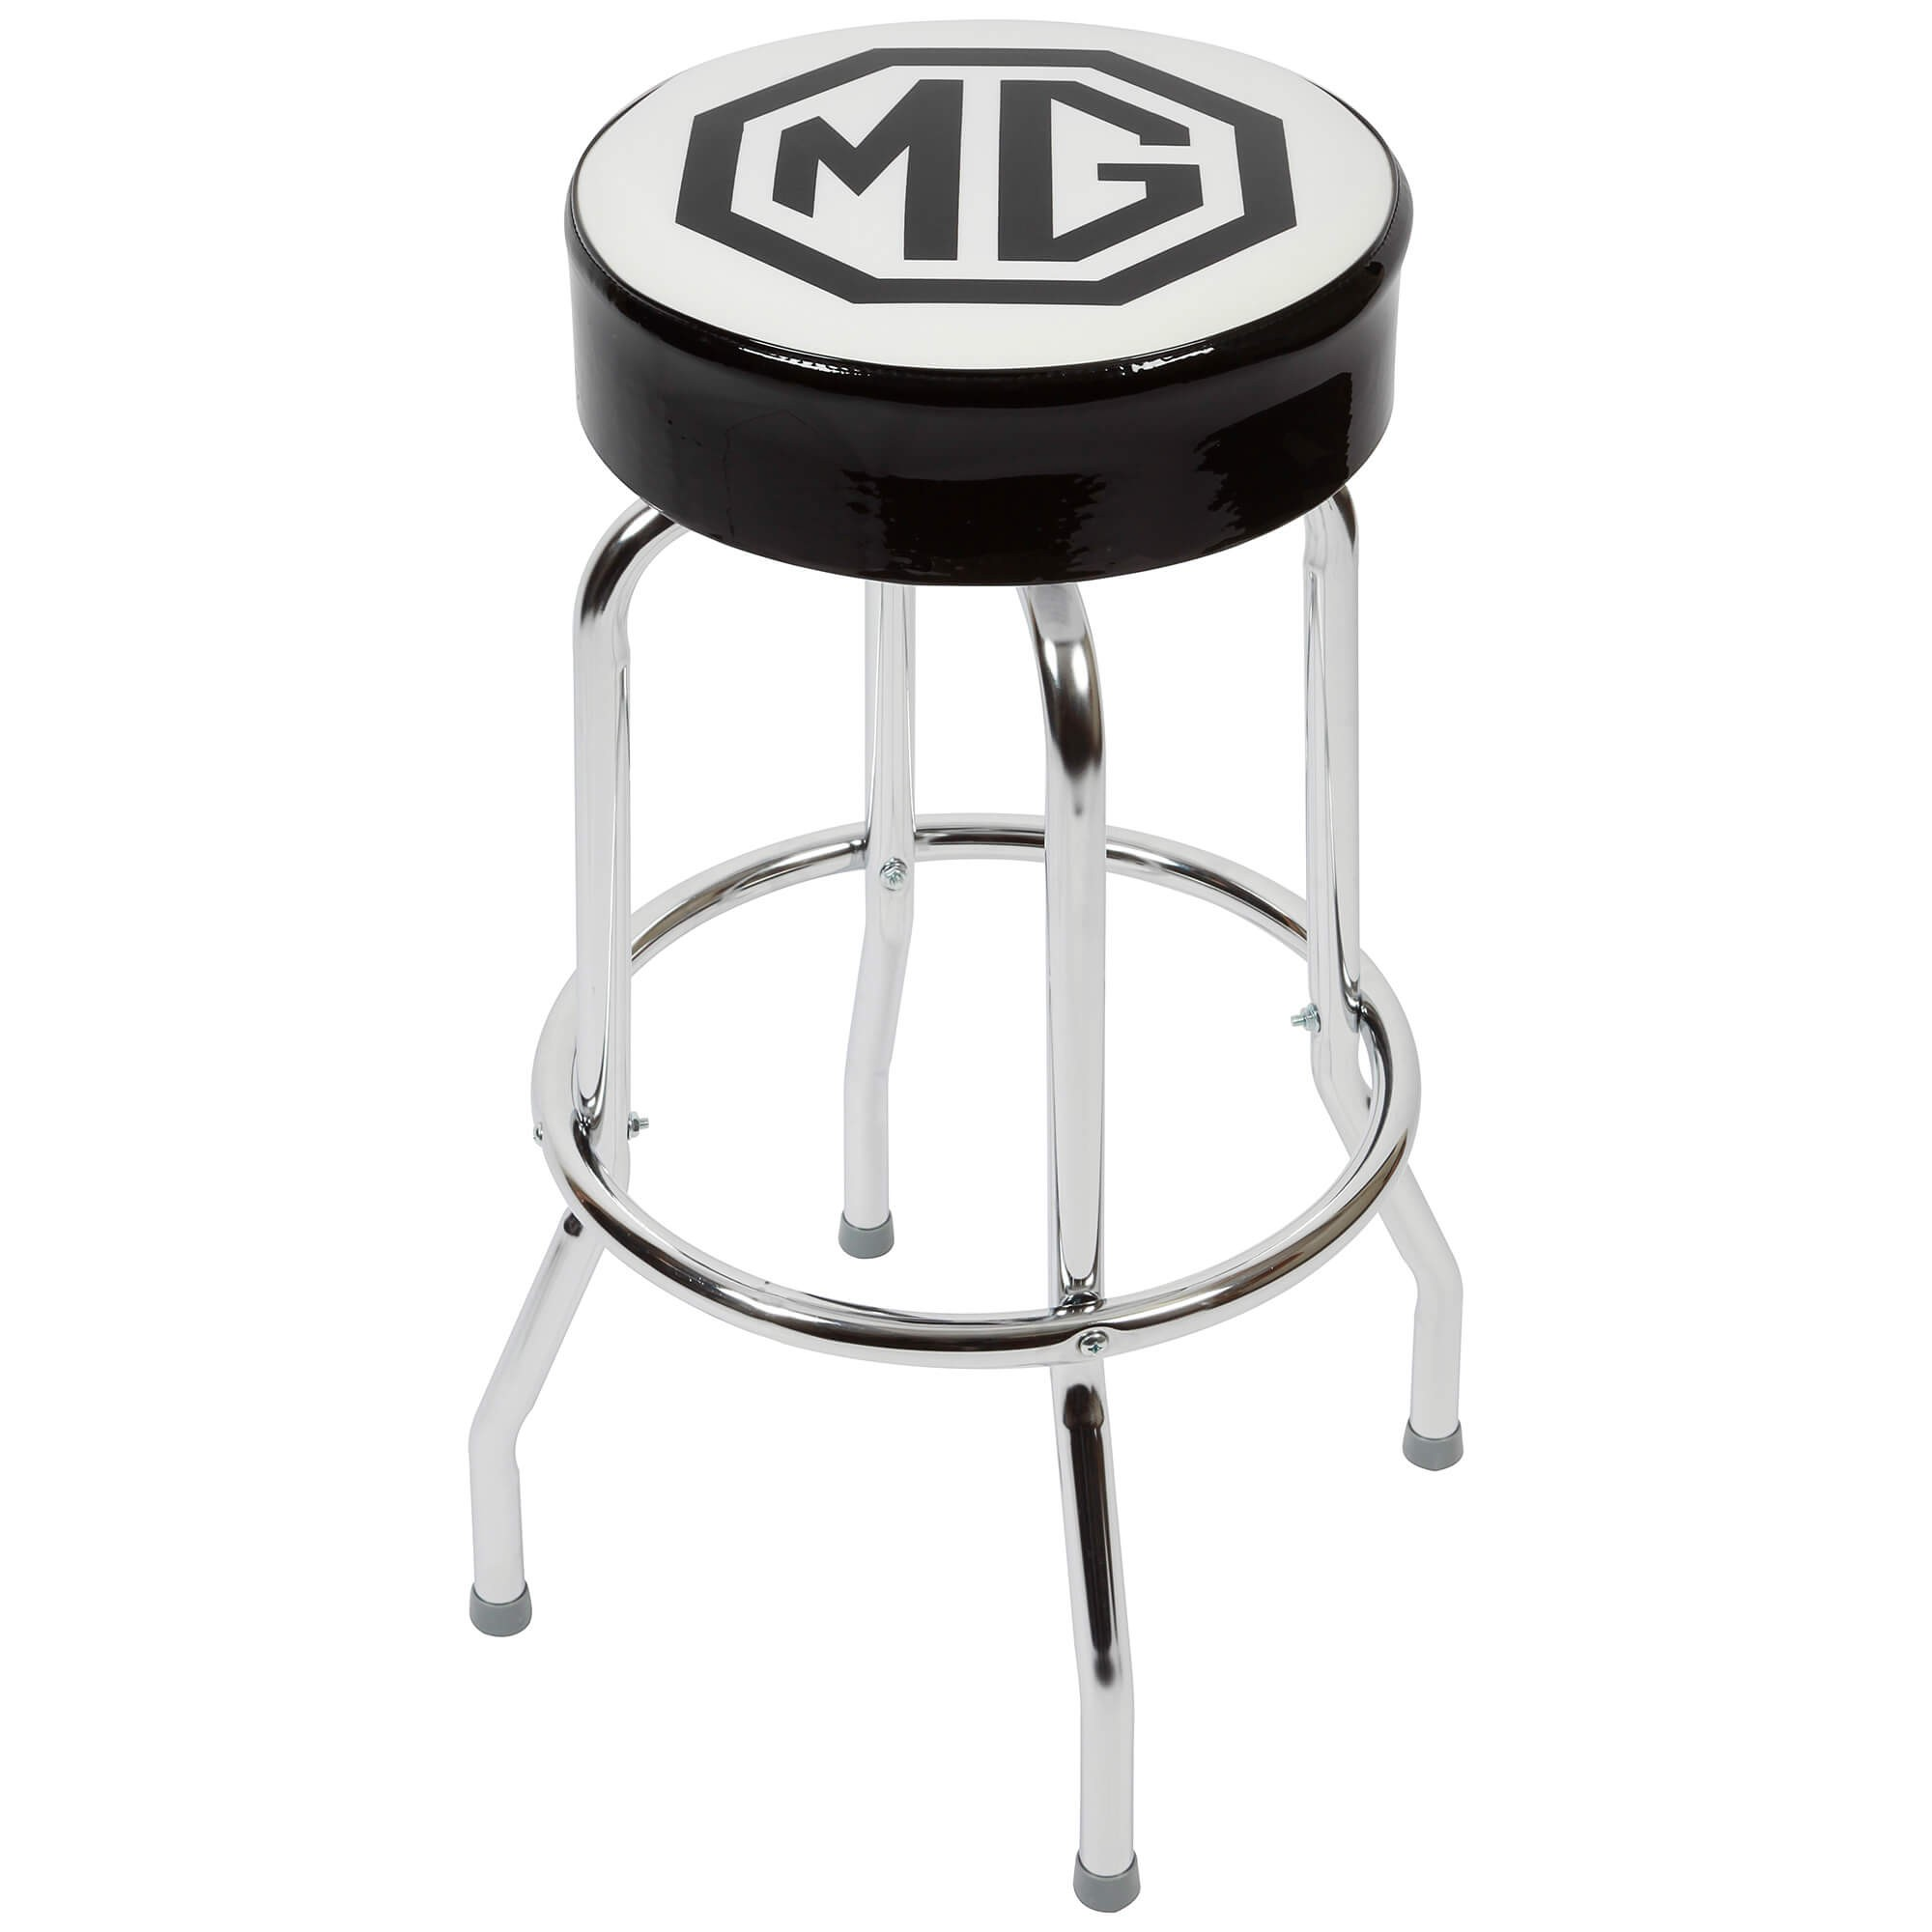 231 800 Mg Bar Stool Moss Motors